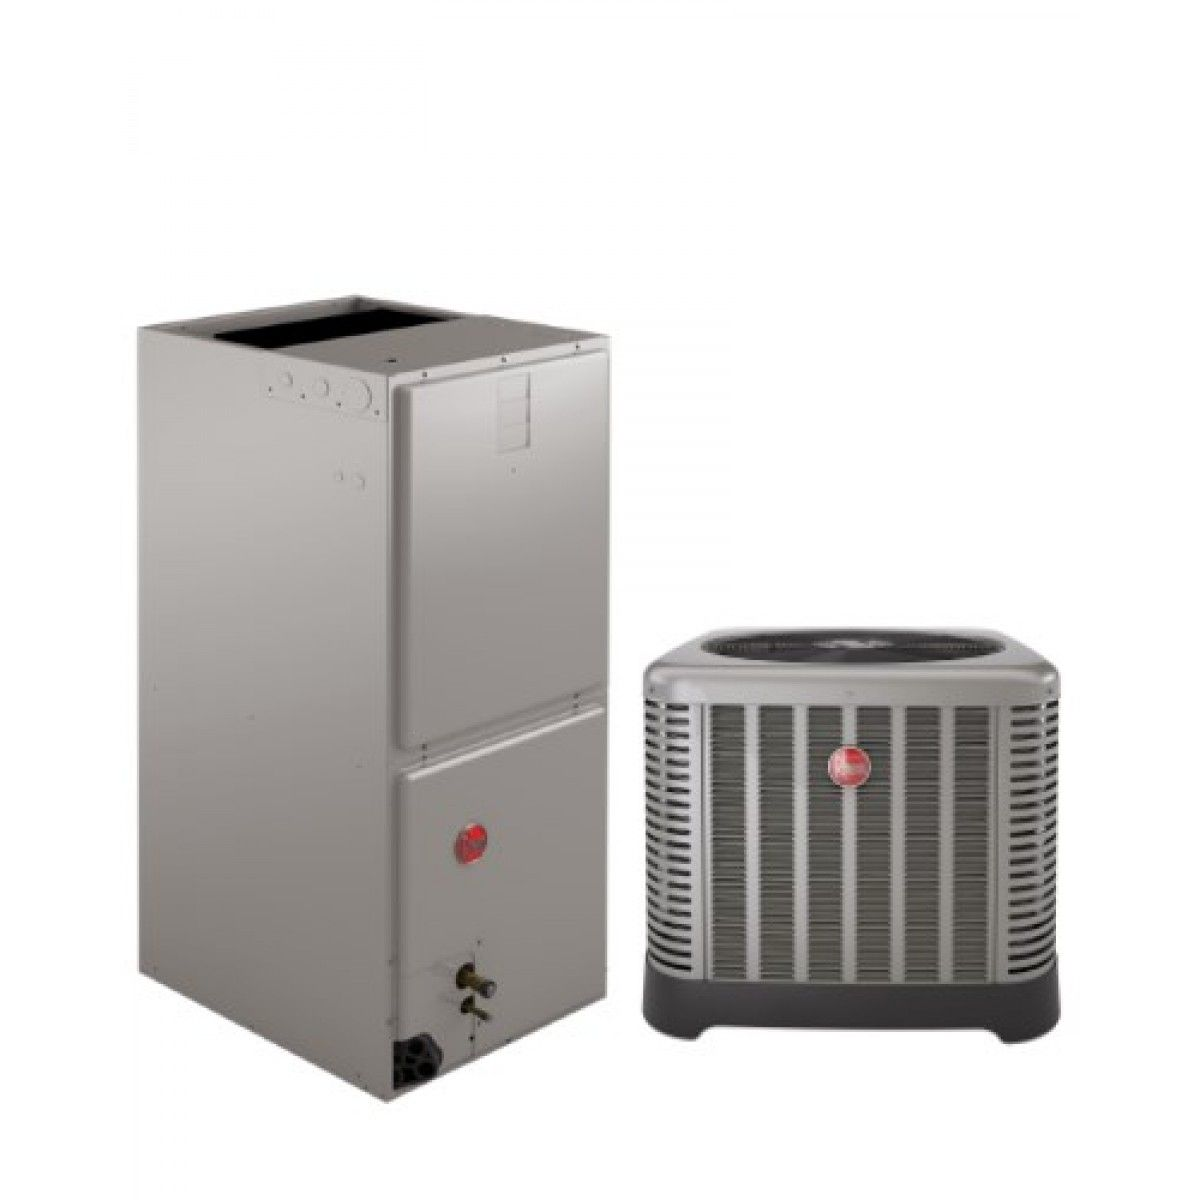 Rheem 1 5 Ton 14 Seer Air Conditioning System With Electric Heat